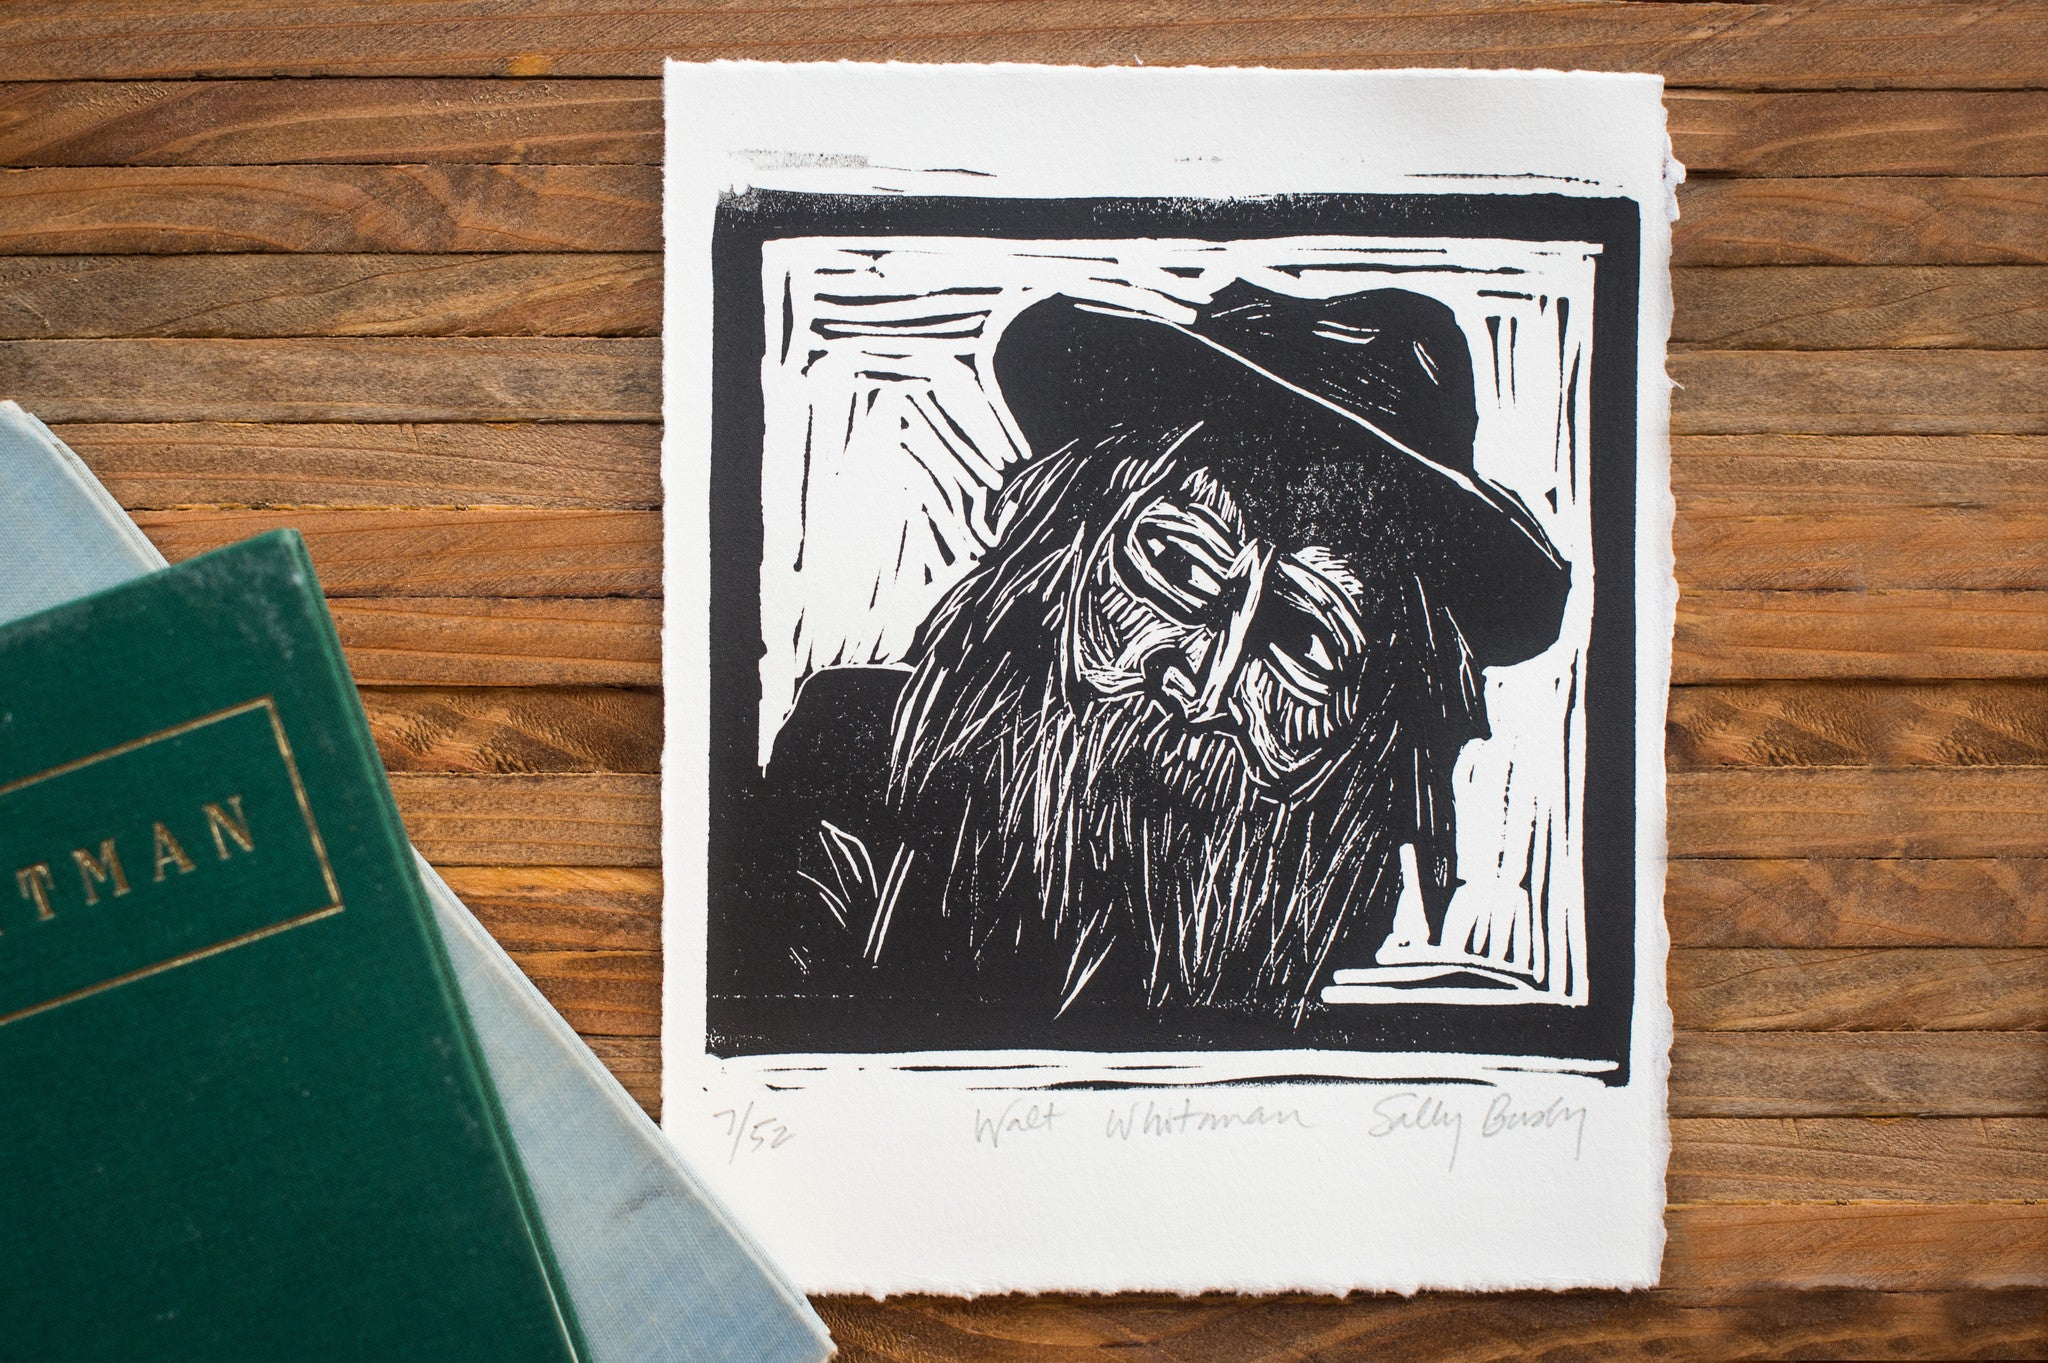 Walt Whitman Hand Pulled Art print with book literary gifts by Eastgrove Studio